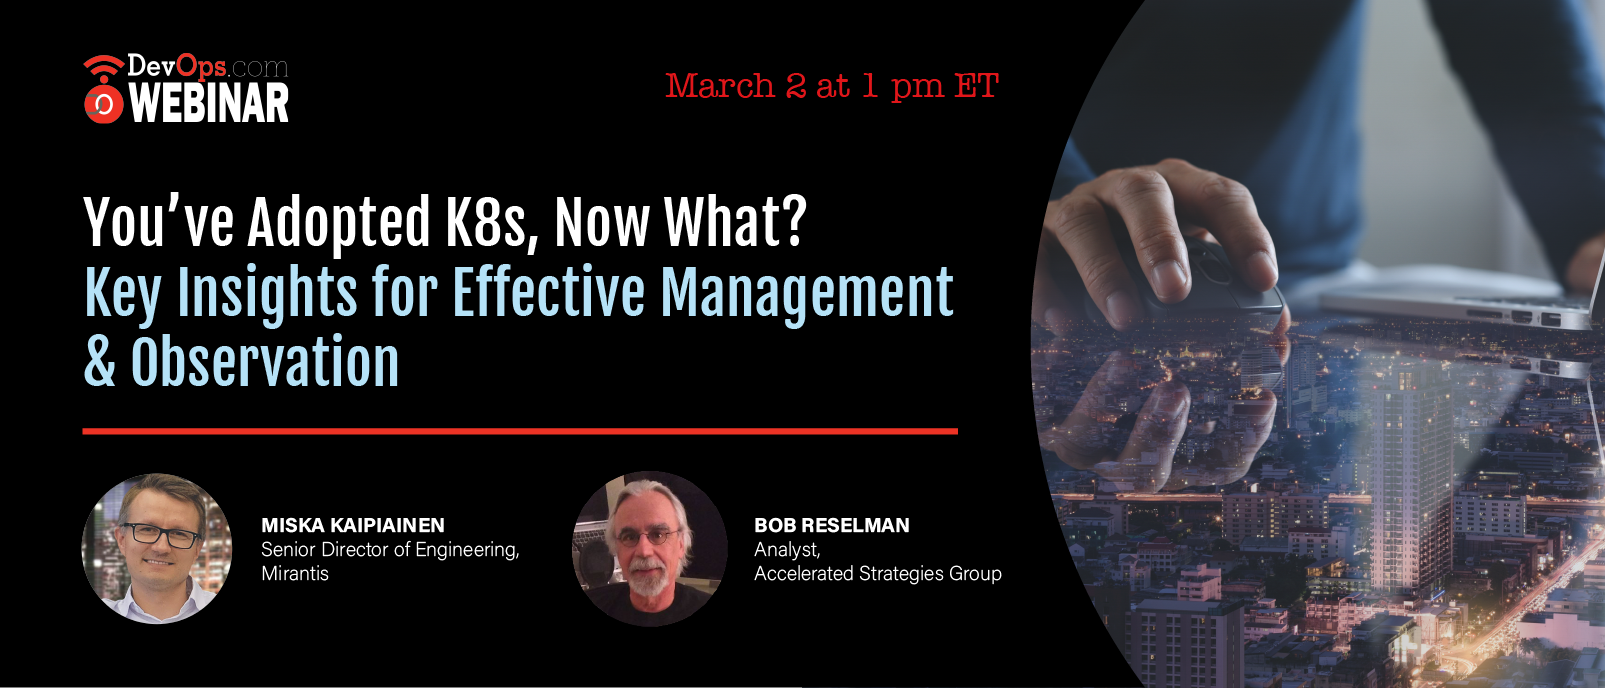 You've Adopted K8s, Now What? Key Insights for Effective Management & Observation